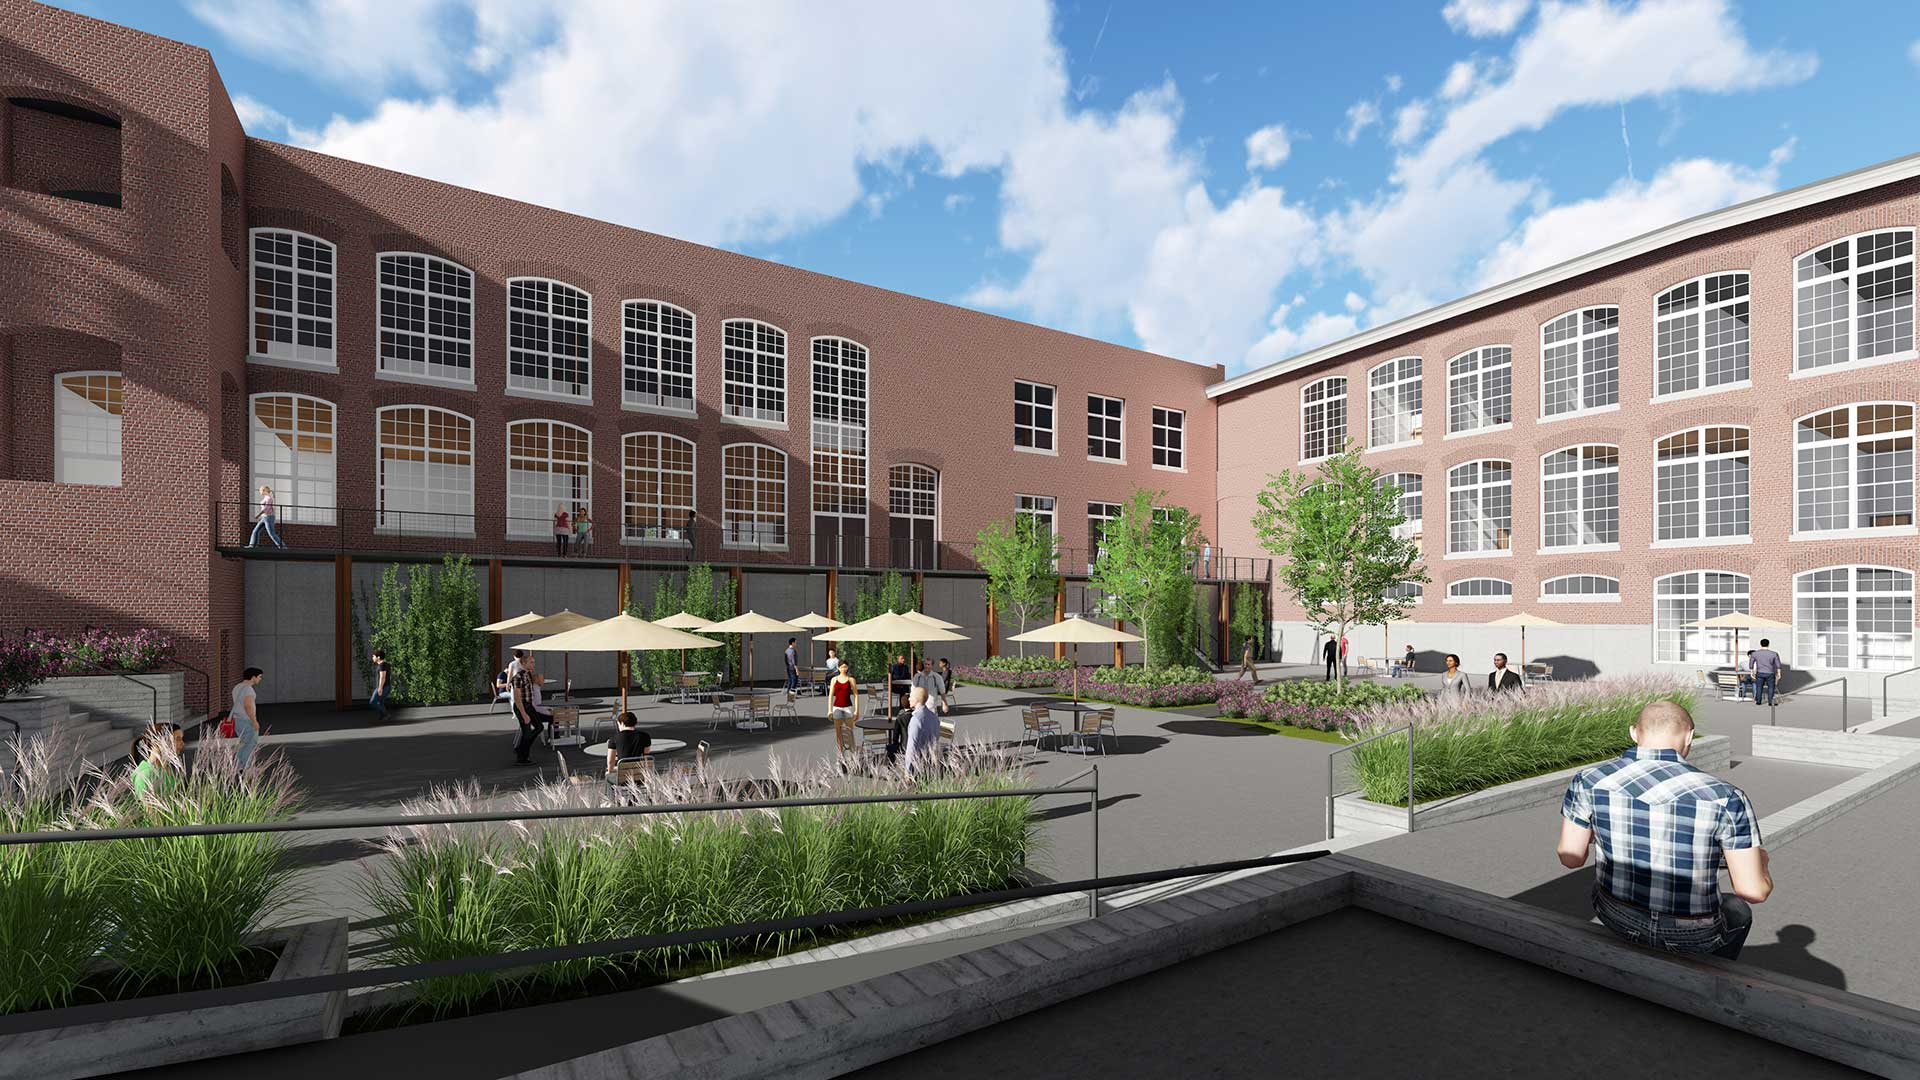 Excitement Builds for Judson Mill: Take a Look at the Progress